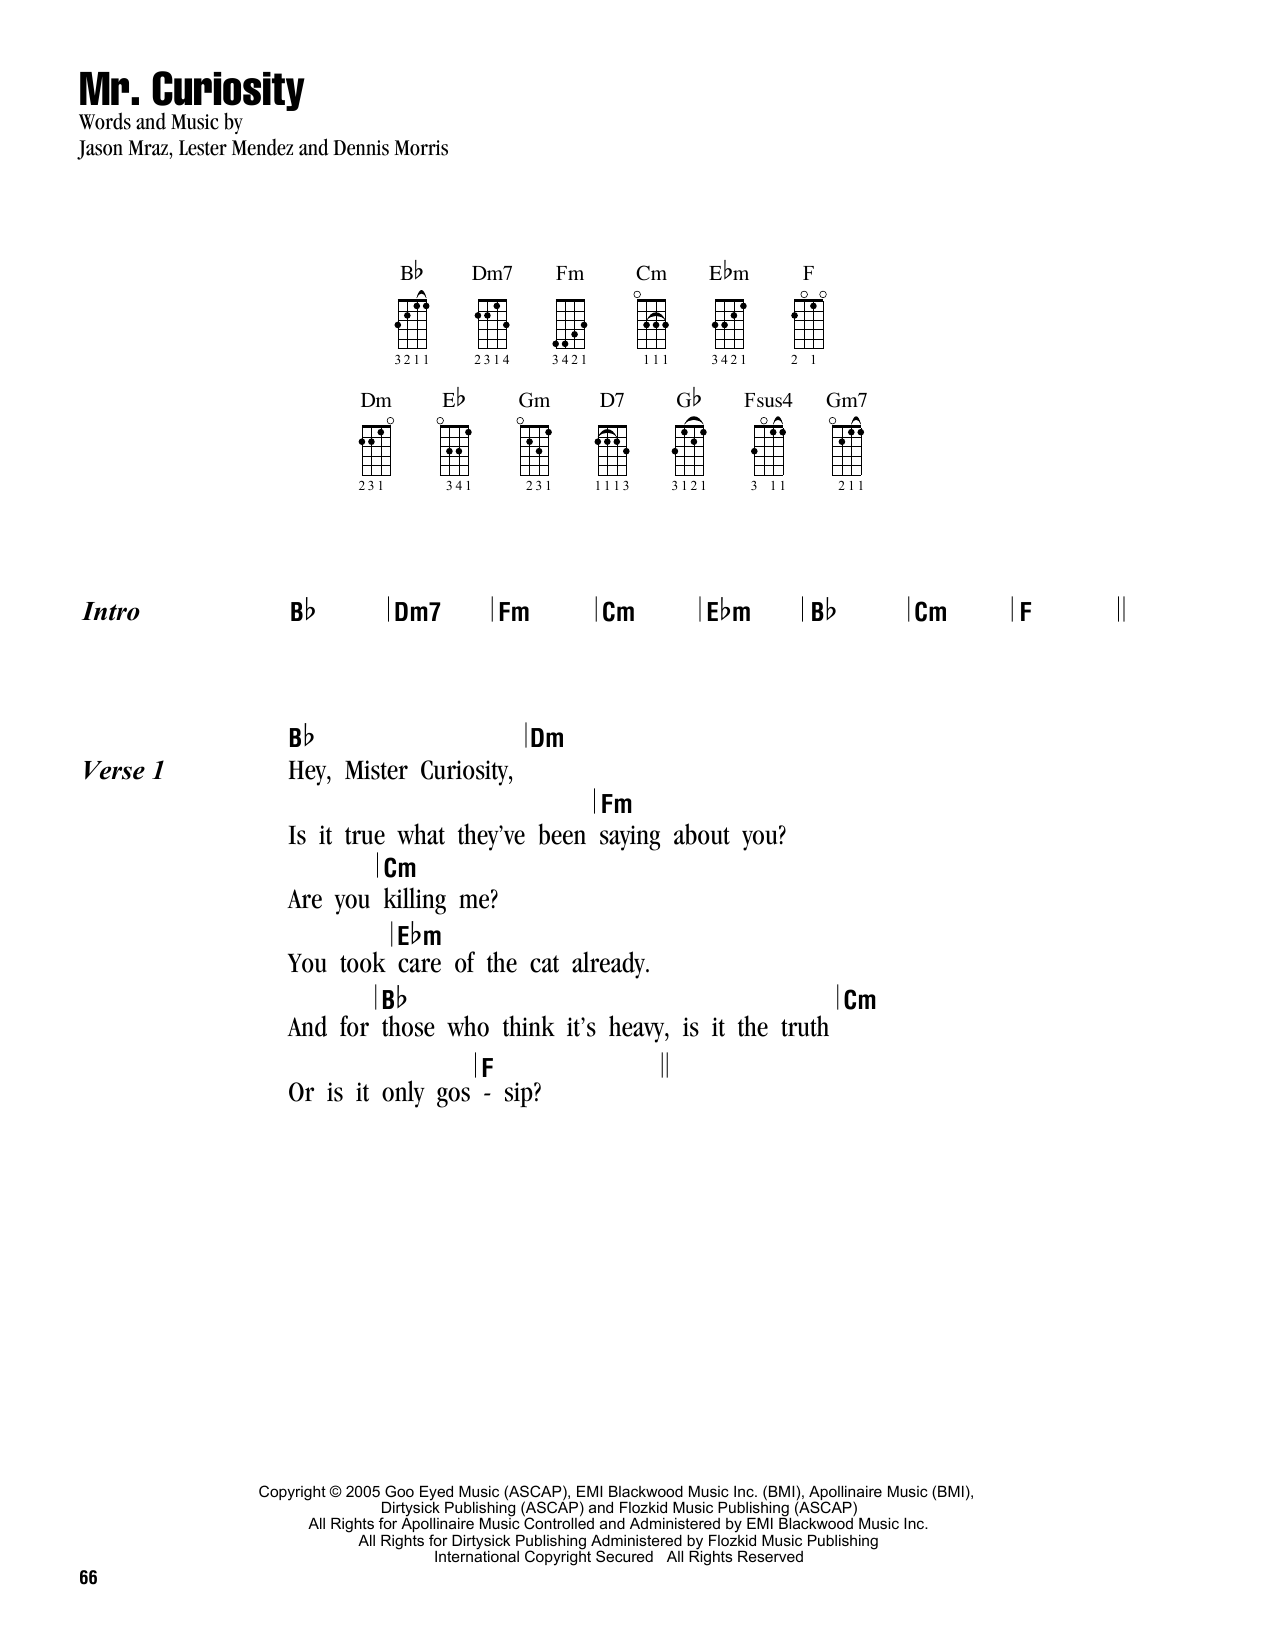 Tablature guitare Mr. Curiosity de Jason Mraz - Ukulele (strumming patterns)